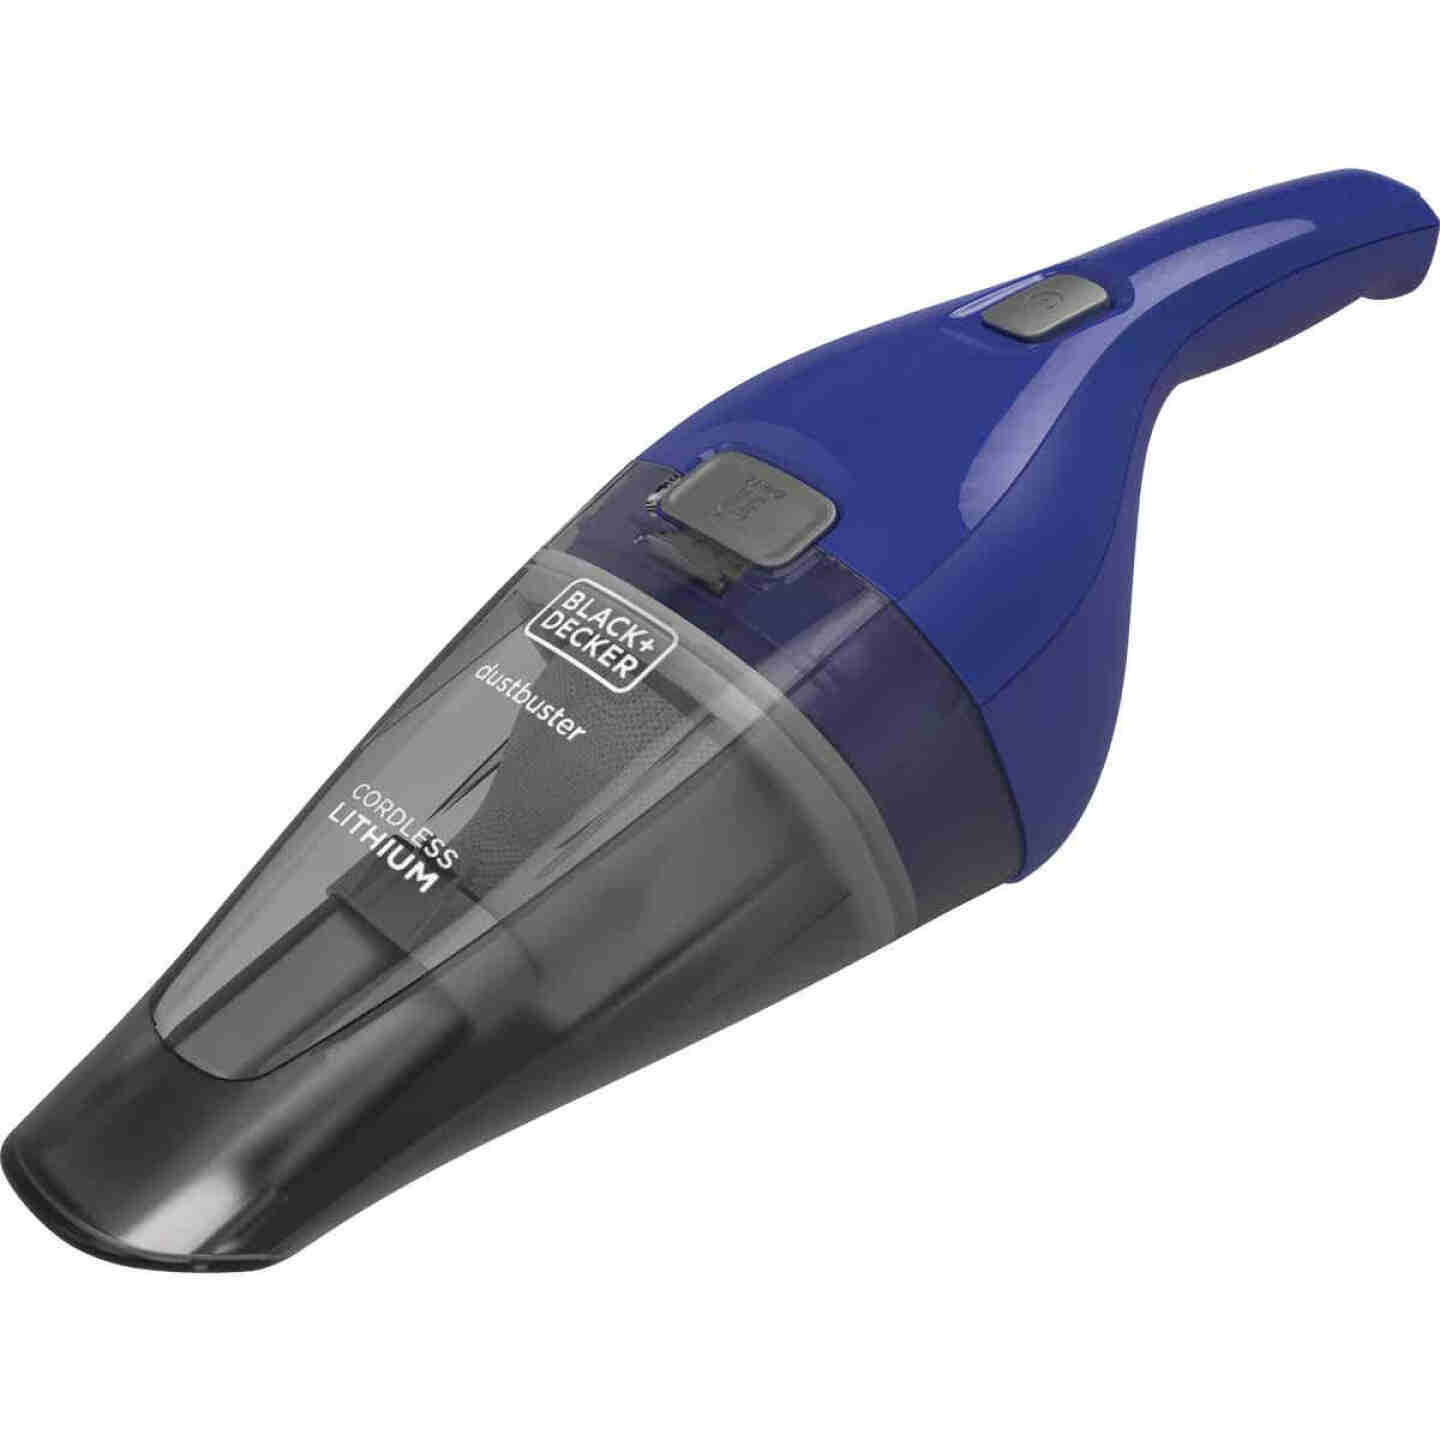 Black & Decker Dustbuster QuickClean 3.6V 1.5AH Cobalt Cordless Handheld Vacuum Cleaner Image 1